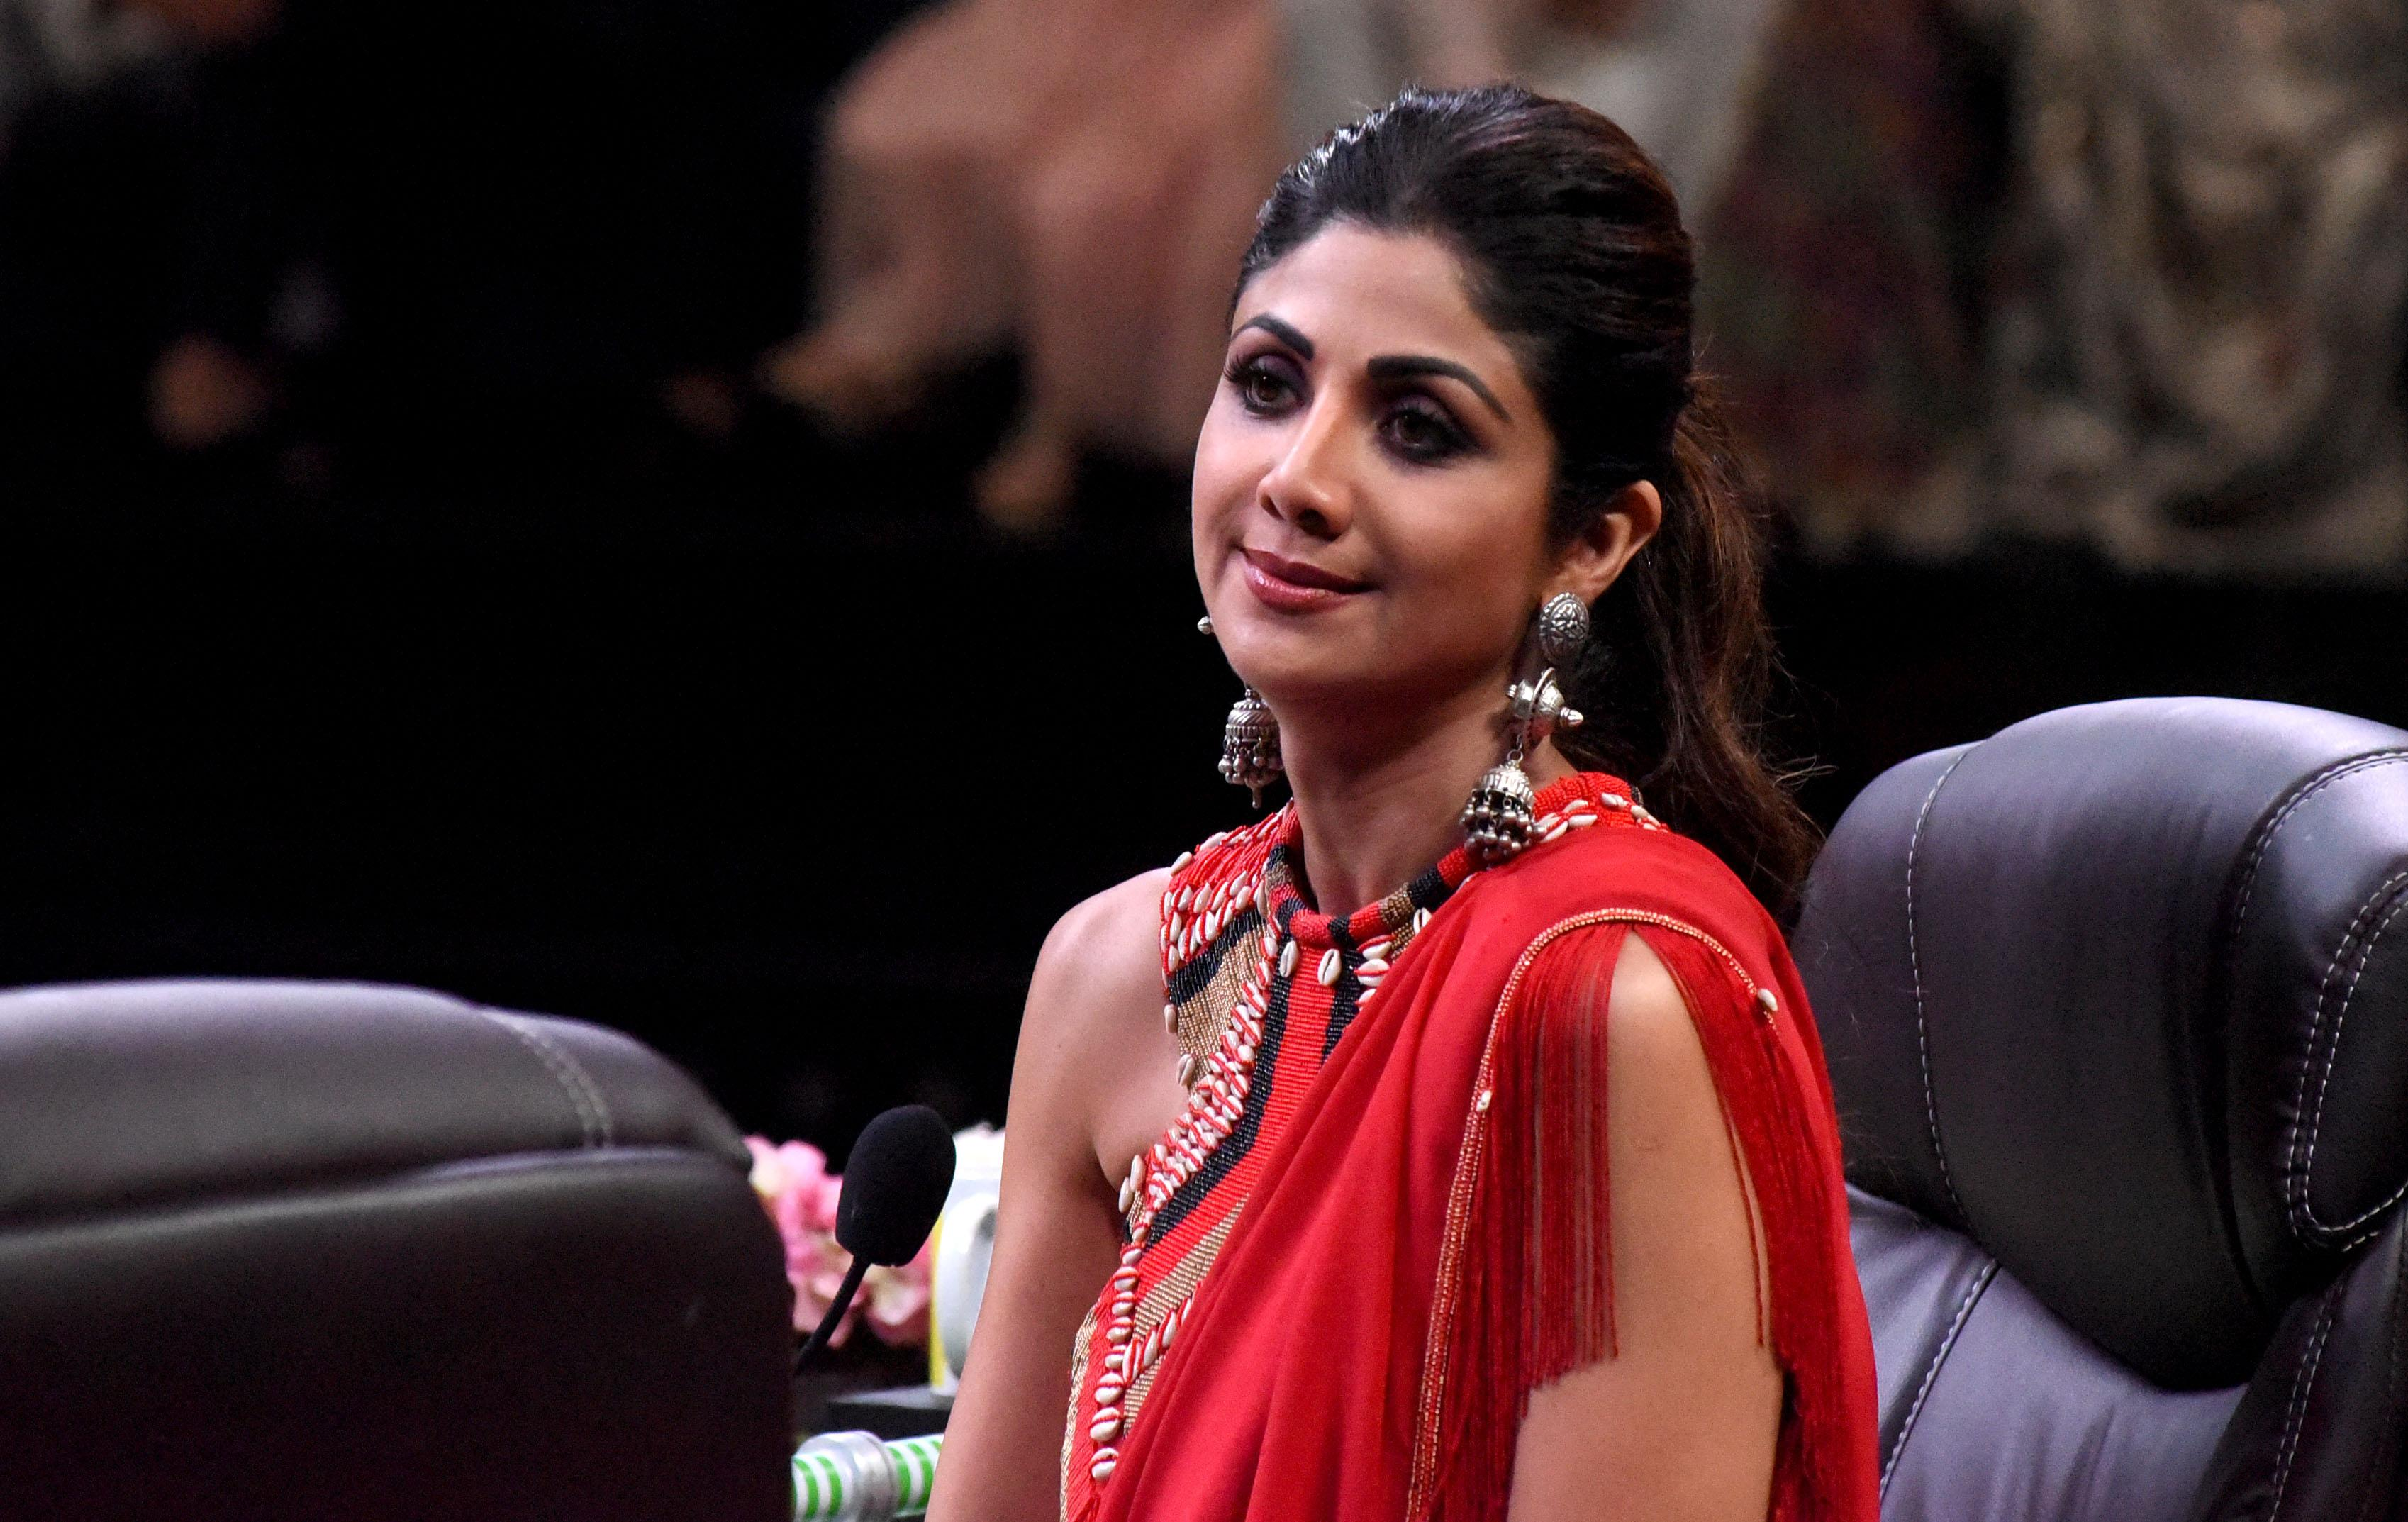 Indian Bollywood actress and judge of Indian television children's dance reality show Super Dancer Chapter 3' Shilpa Shetty looks on during the visit of Indian Bollywood actors (unseen) Alia Bhatt, Varu Dhawan and Sonakshi Sinhathe to the program to promote the upcoming period drama Hindi film 'Kalank' in Mumbai on March 25, 2019. (Photo by Sujit Jaiswal / AFP) (Photo credit should read SUJIT JAISWAL/AFP/Getty Images)